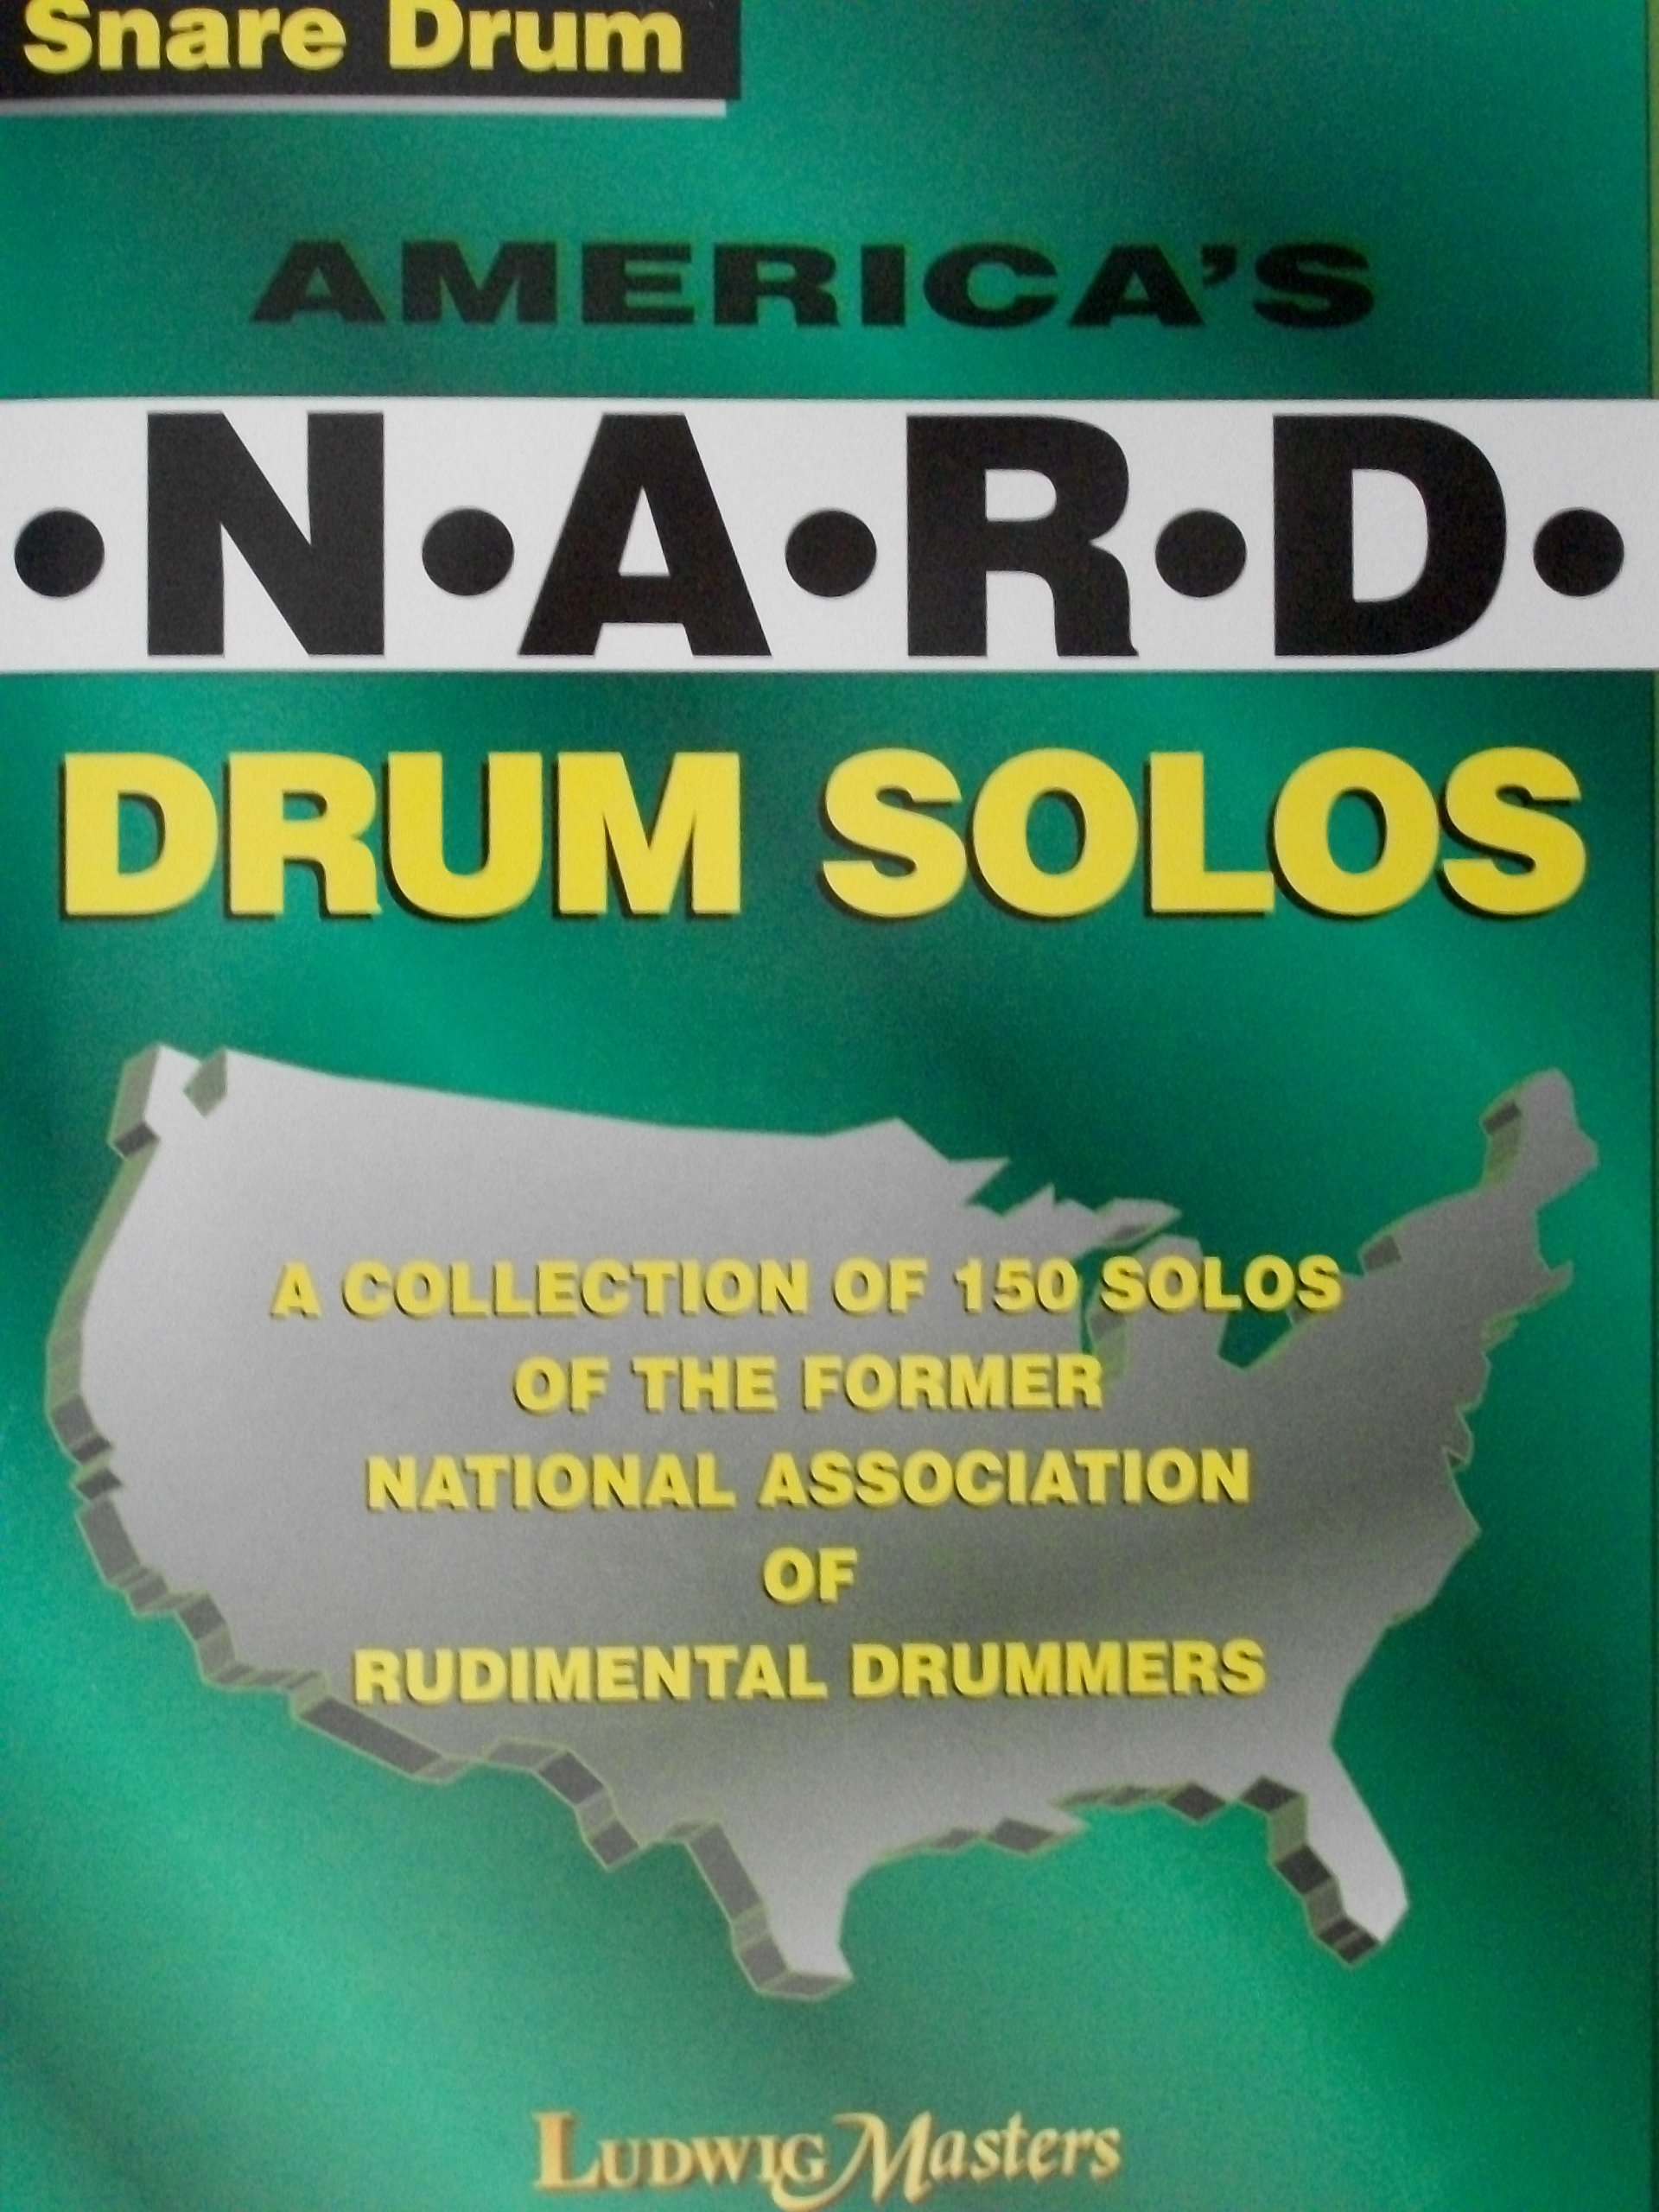 Download N.A.R.D. America's Drum Solos (2009 revised edition) (2009 revised edition) PDF